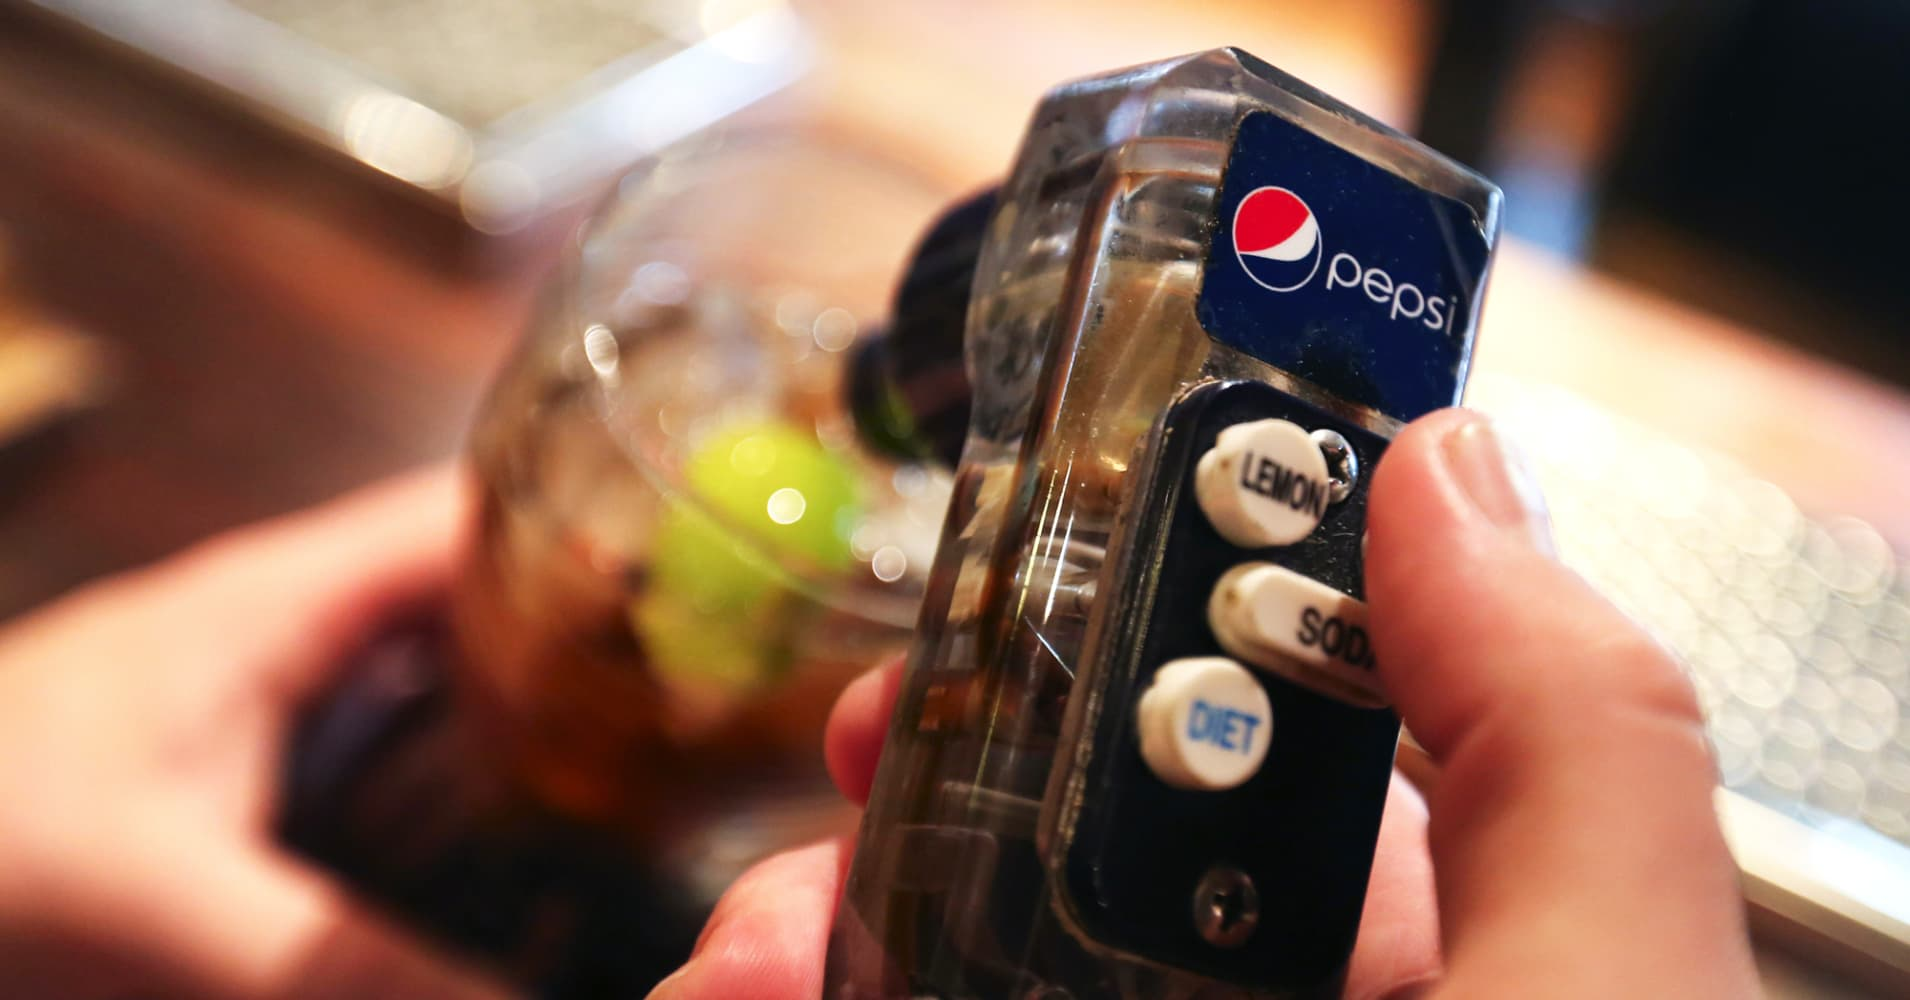 PepsiCo earnings in line with estimates but forecasts weak 2019